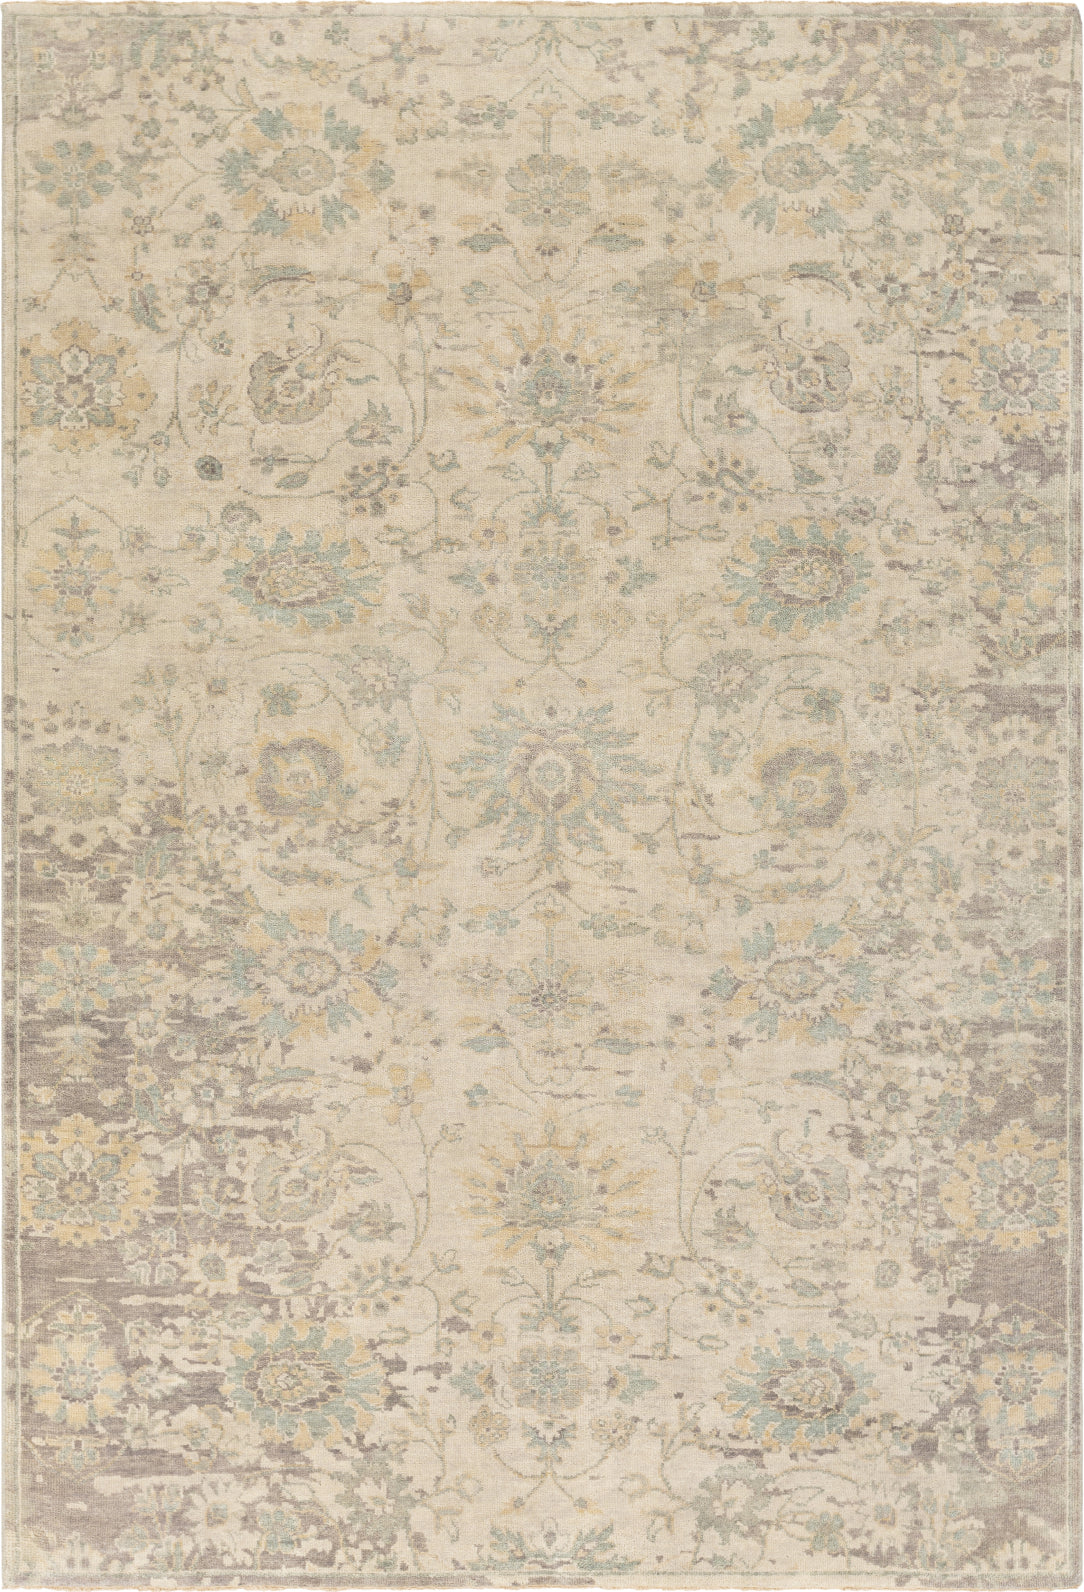 Surya Normandy NOY-8006 Area Rug main image